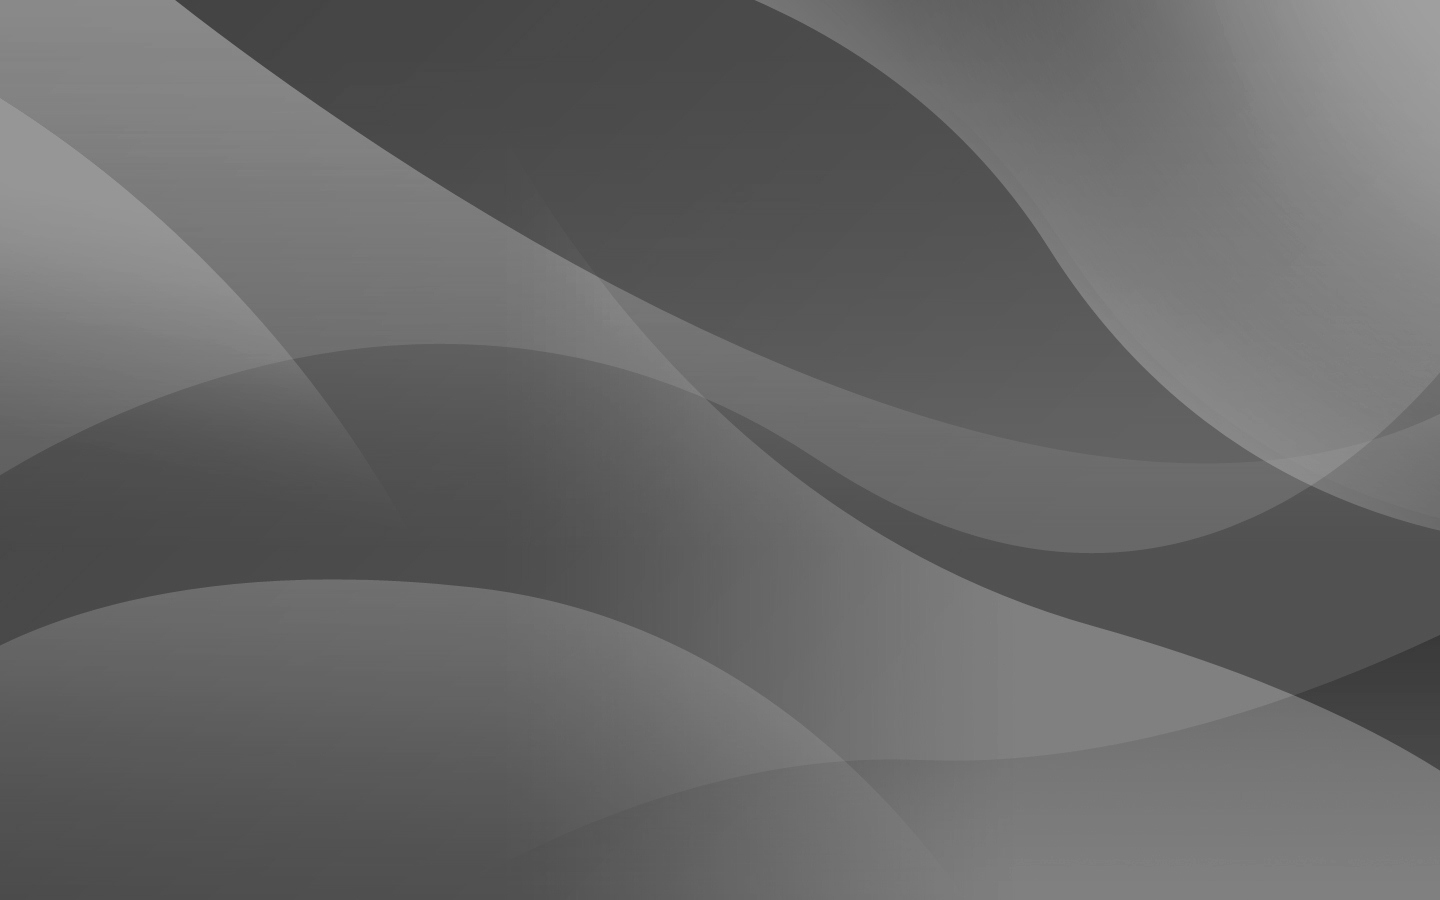 Silver abstract wallpaper 21836 1440x900 px for Abstract wallpaper for walls